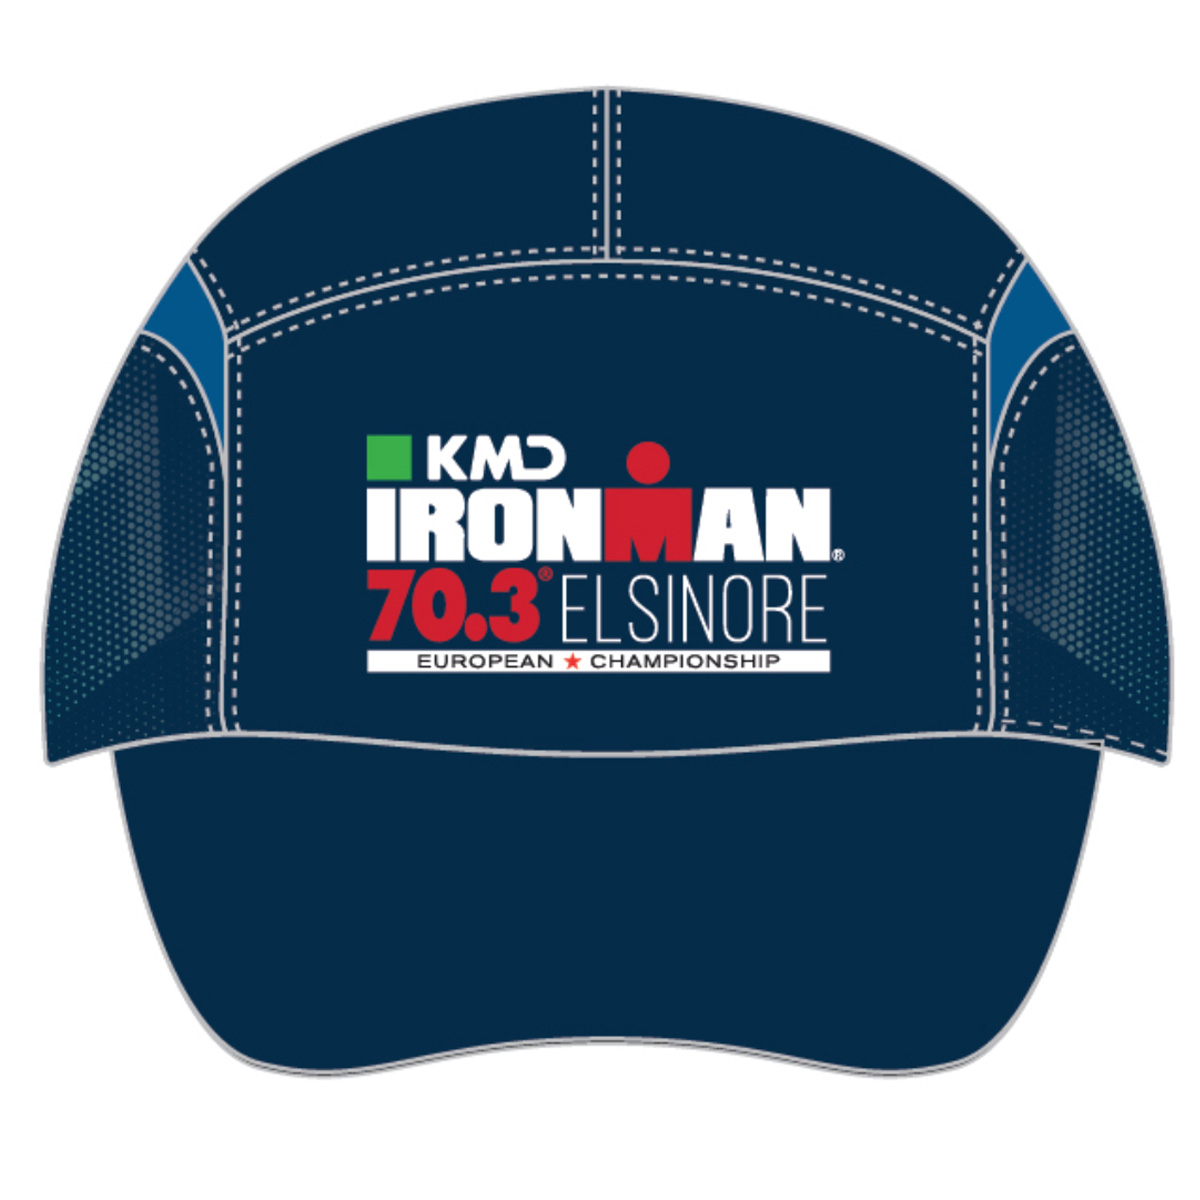 IRONMAN 70.3 ELSINORE EVENT TECH HAT - BLUE